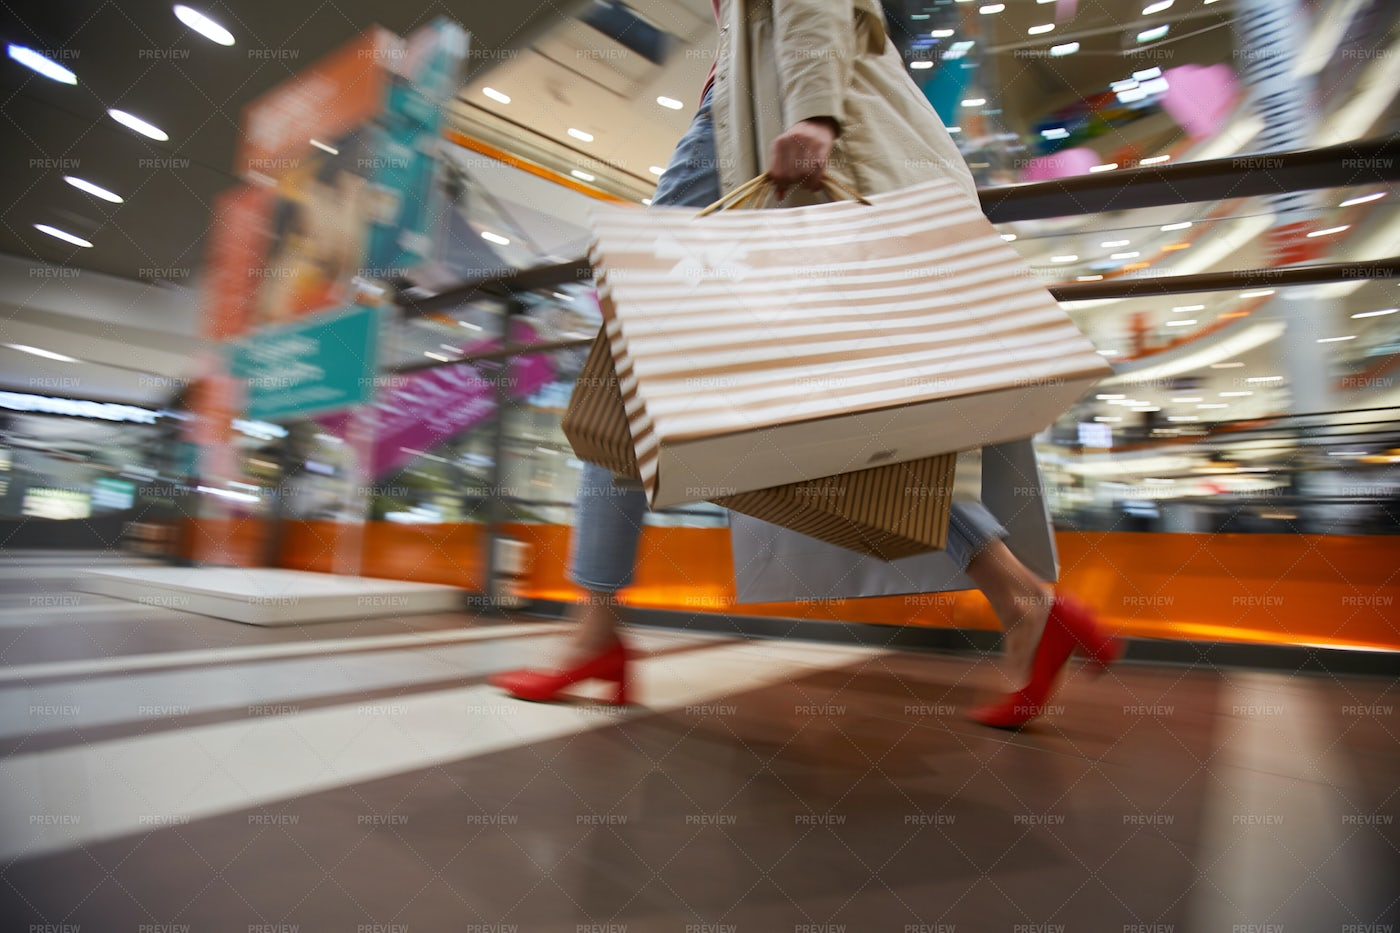 Lady Doing Shopping In Mall: Stock Photos